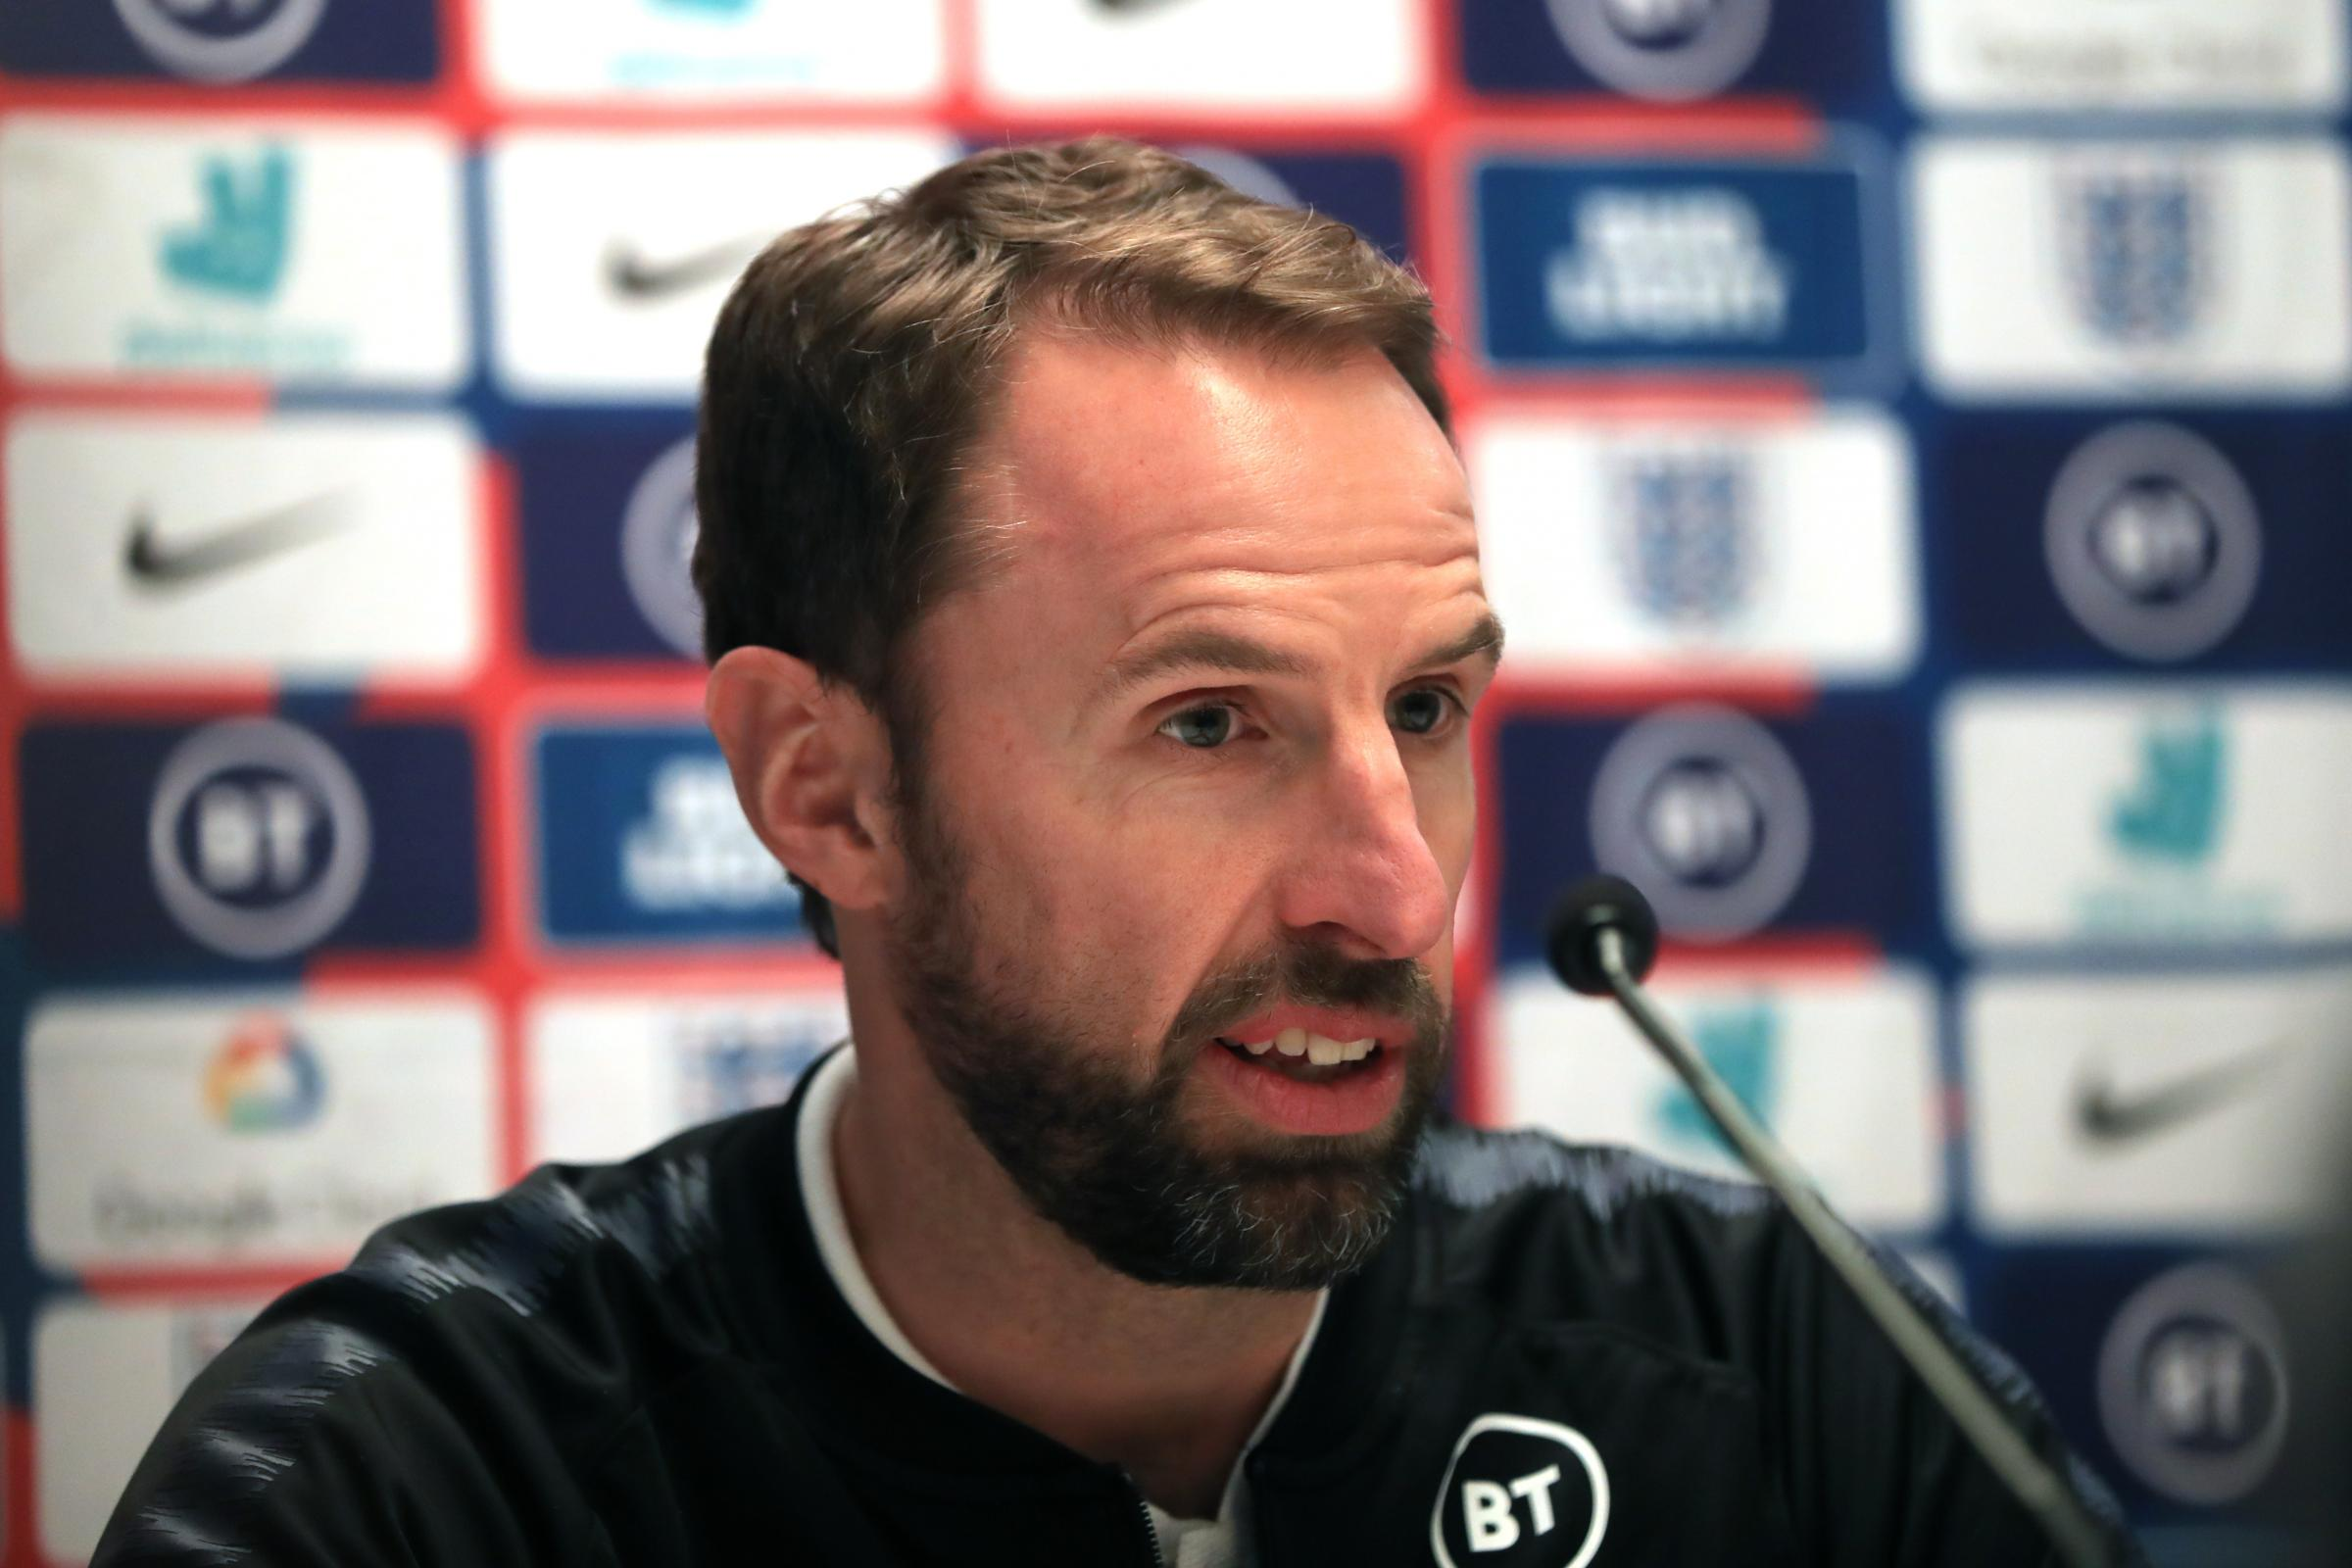 Southgate's Boro experience is helping with England says former Riverside midfielder